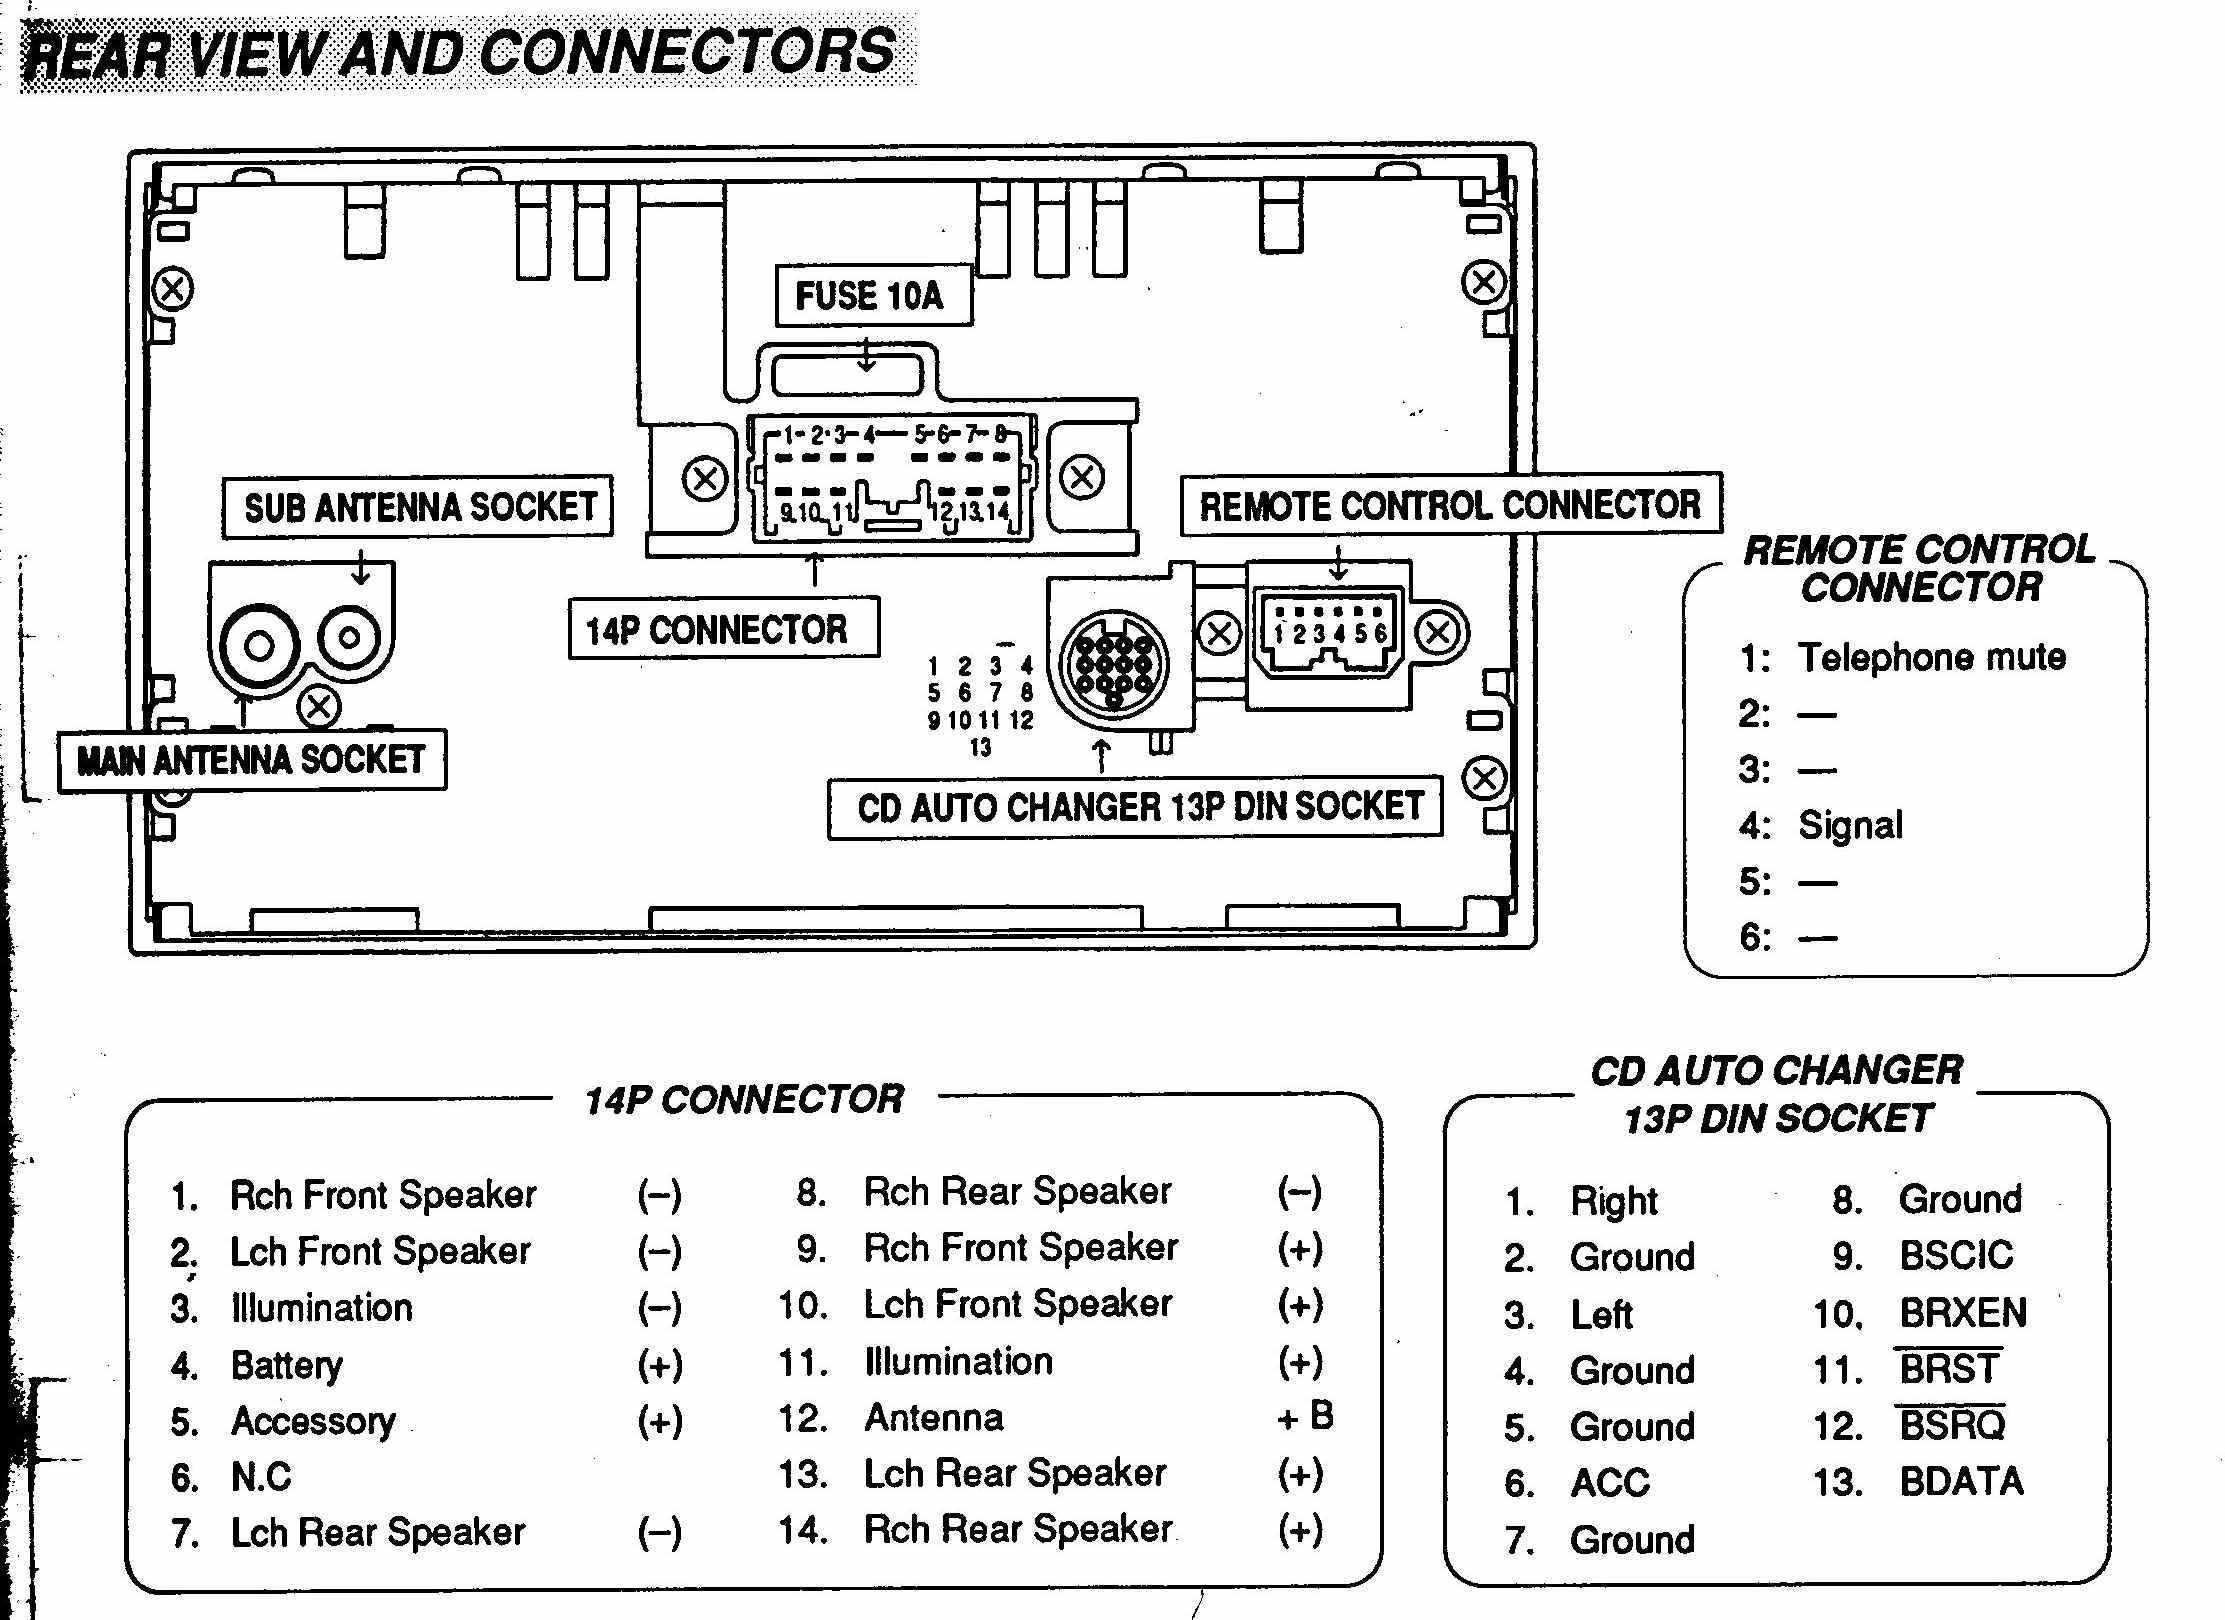 Wiring Diagram Nissan X Trail | Wiring Diagram on car audio install diagrams, auto frame diagrams, auto diagnostics, chevy truck diagrams, auto steering diagrams, auto interior diagrams, blank diagrams, zenith carburetors diagrams, electrical diagrams, auto blueprints, auto chassis, auto rear axle, auto lighting, auto transmission, auto tools, auto air conditioning diagrams, auto schematics, electronic circuit diagrams, auto wiring symbols, auto starter,